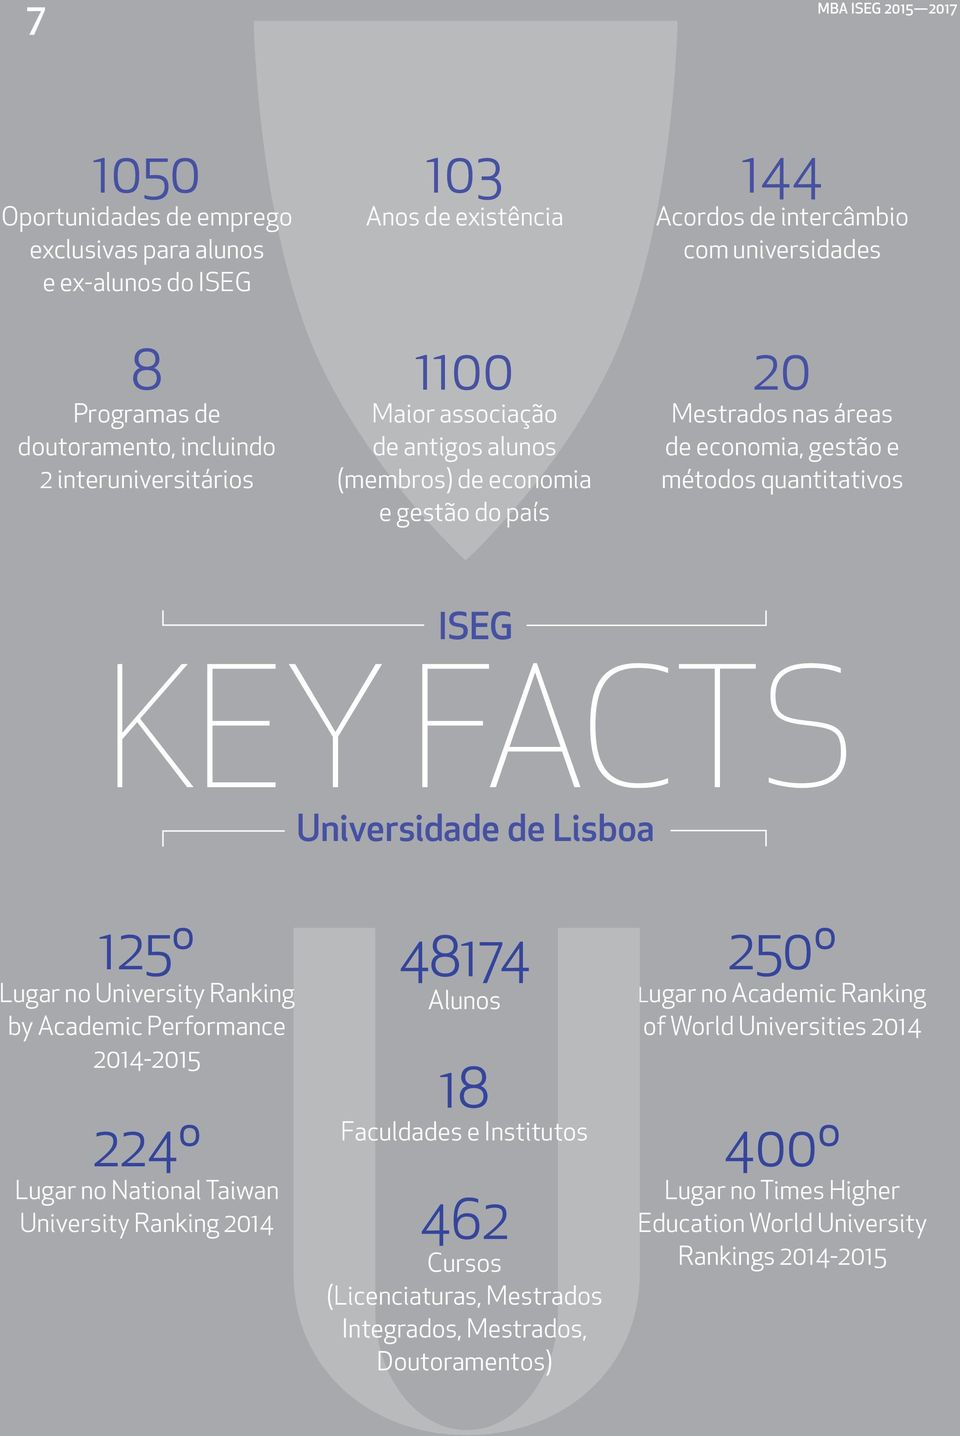 FACTS Universidade de Lisboa 125º Lugar no University Ranking by Academic Performance 2014-2015 224º Lugar no National Taiwan University Ranking 2014 48174 Alunos 18 Faculdades e Institutos 462